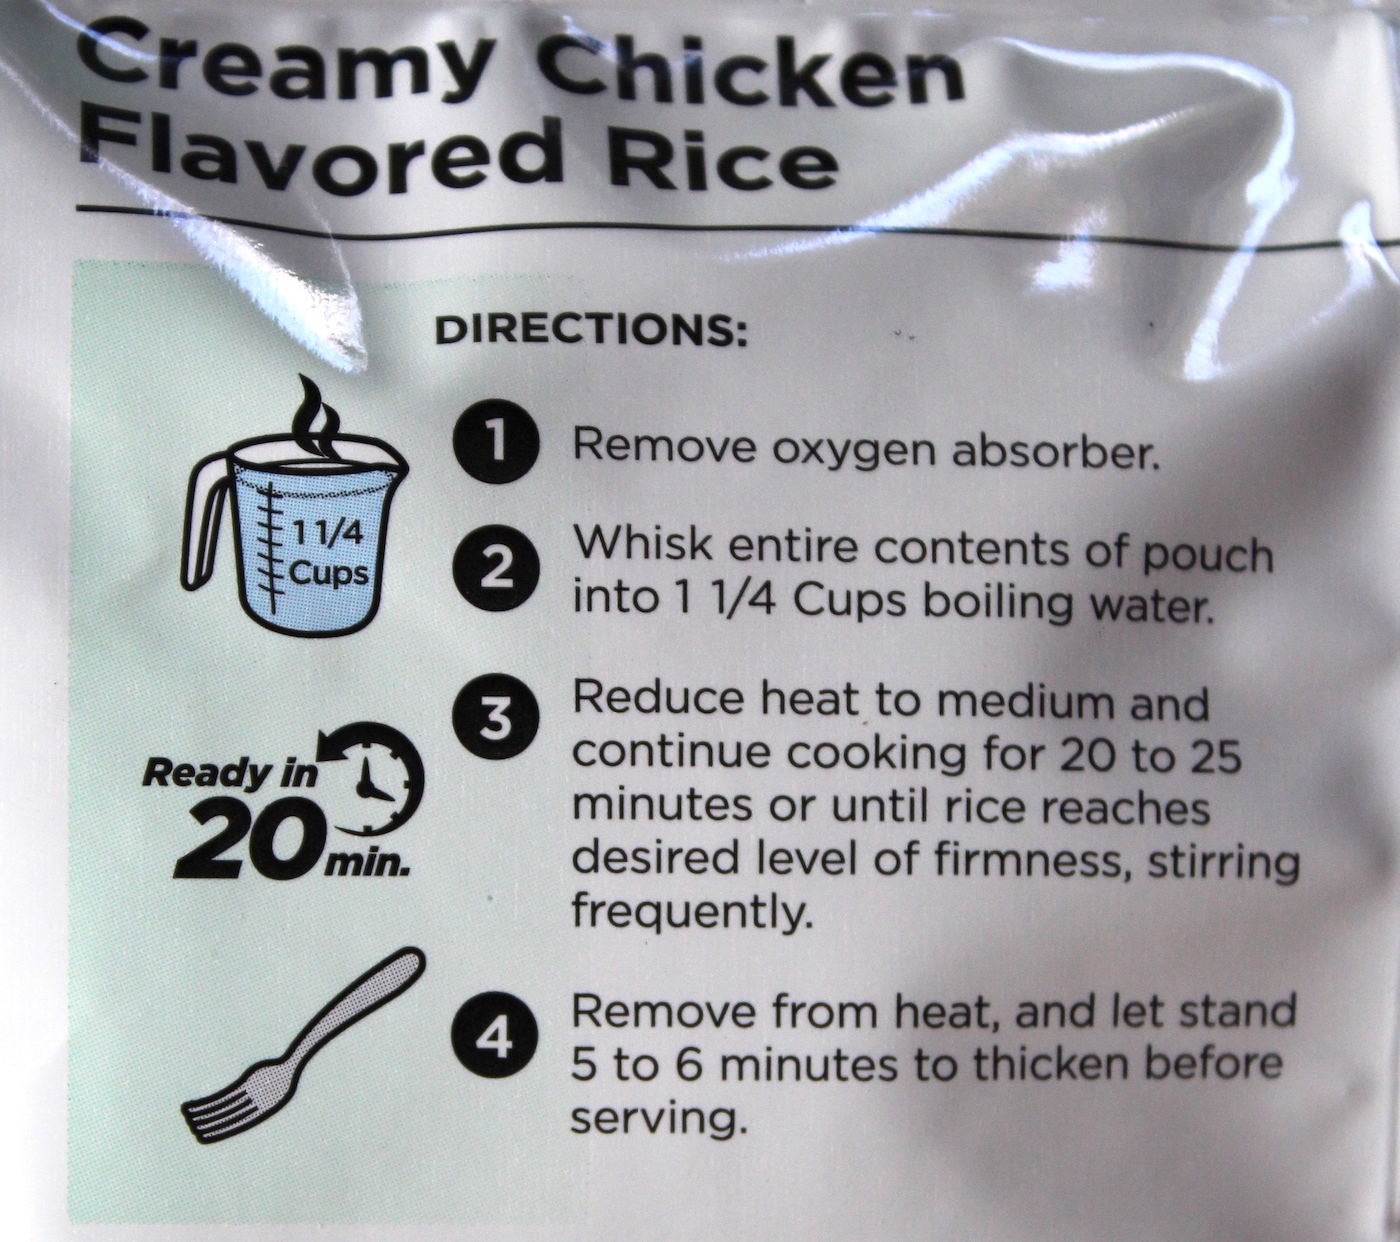 Instructions on Chicken Flavored Rice